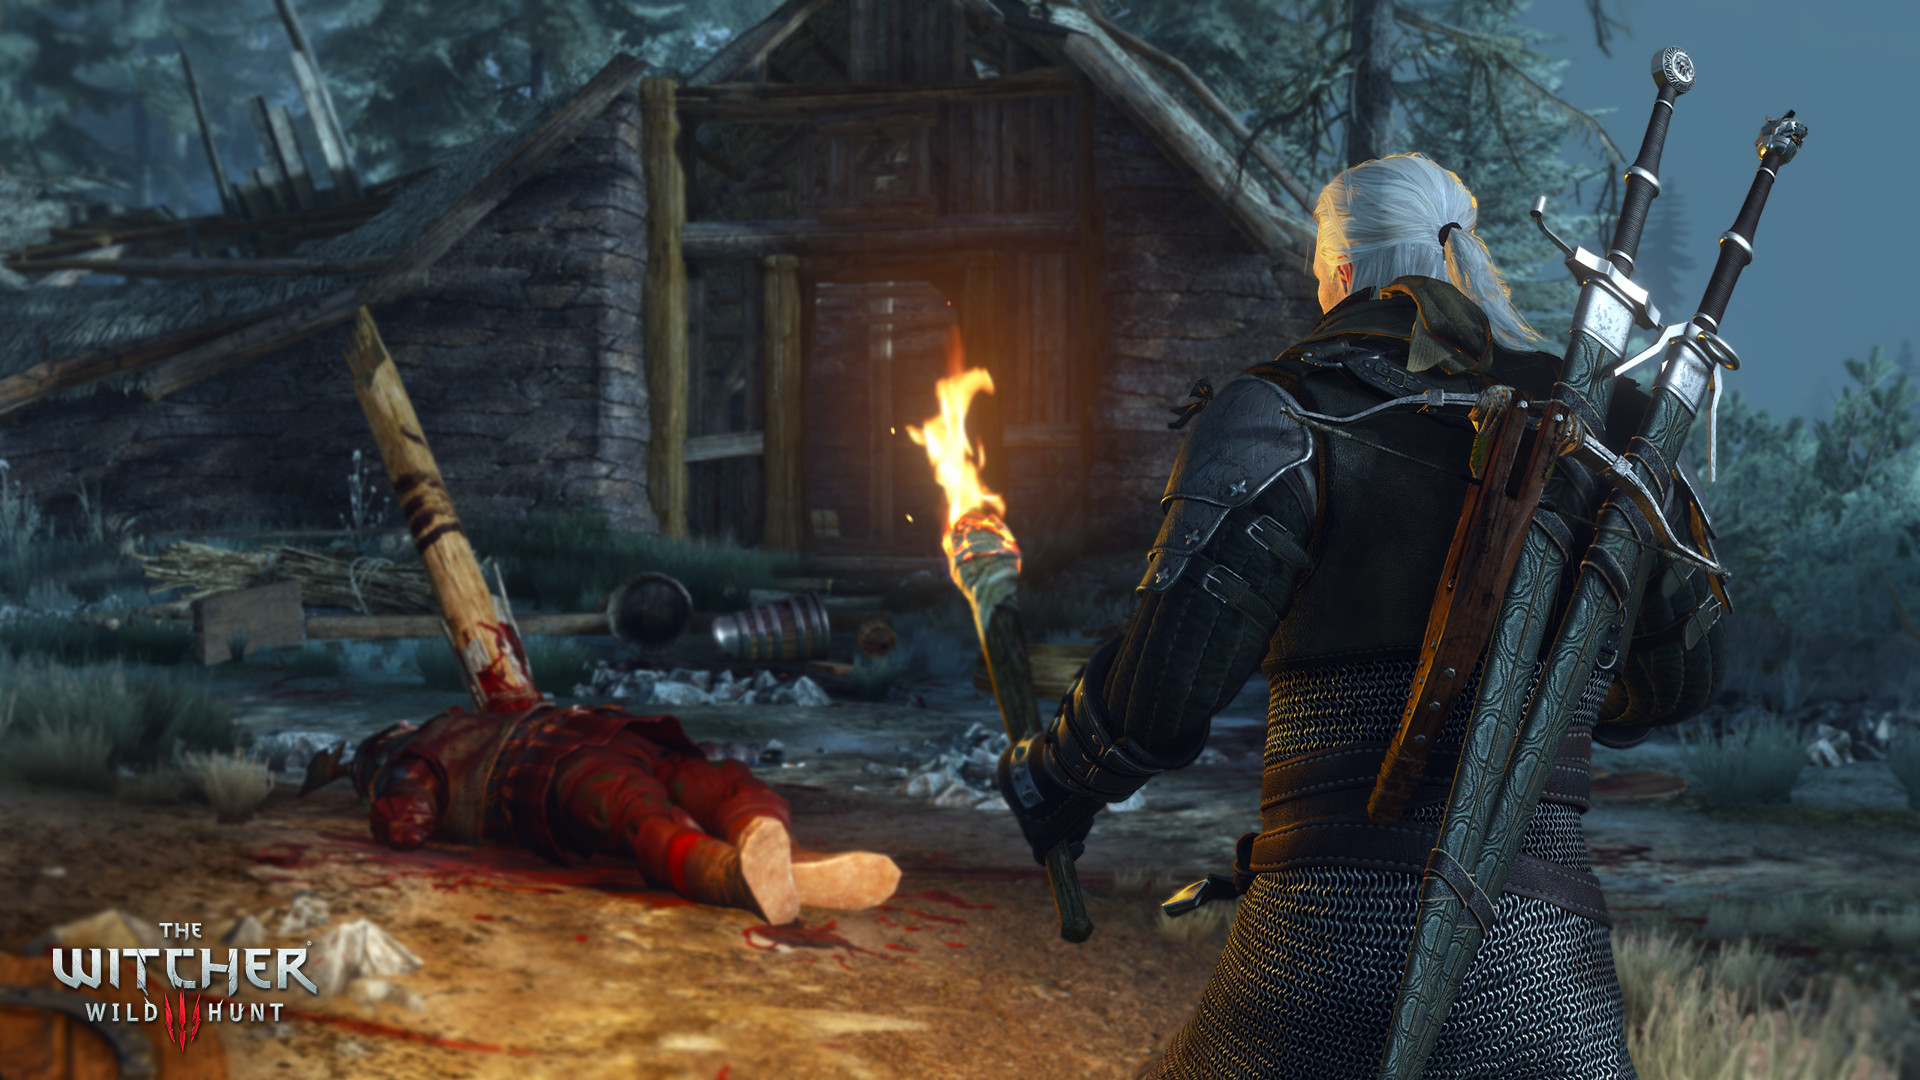 the witcher 3.jpg